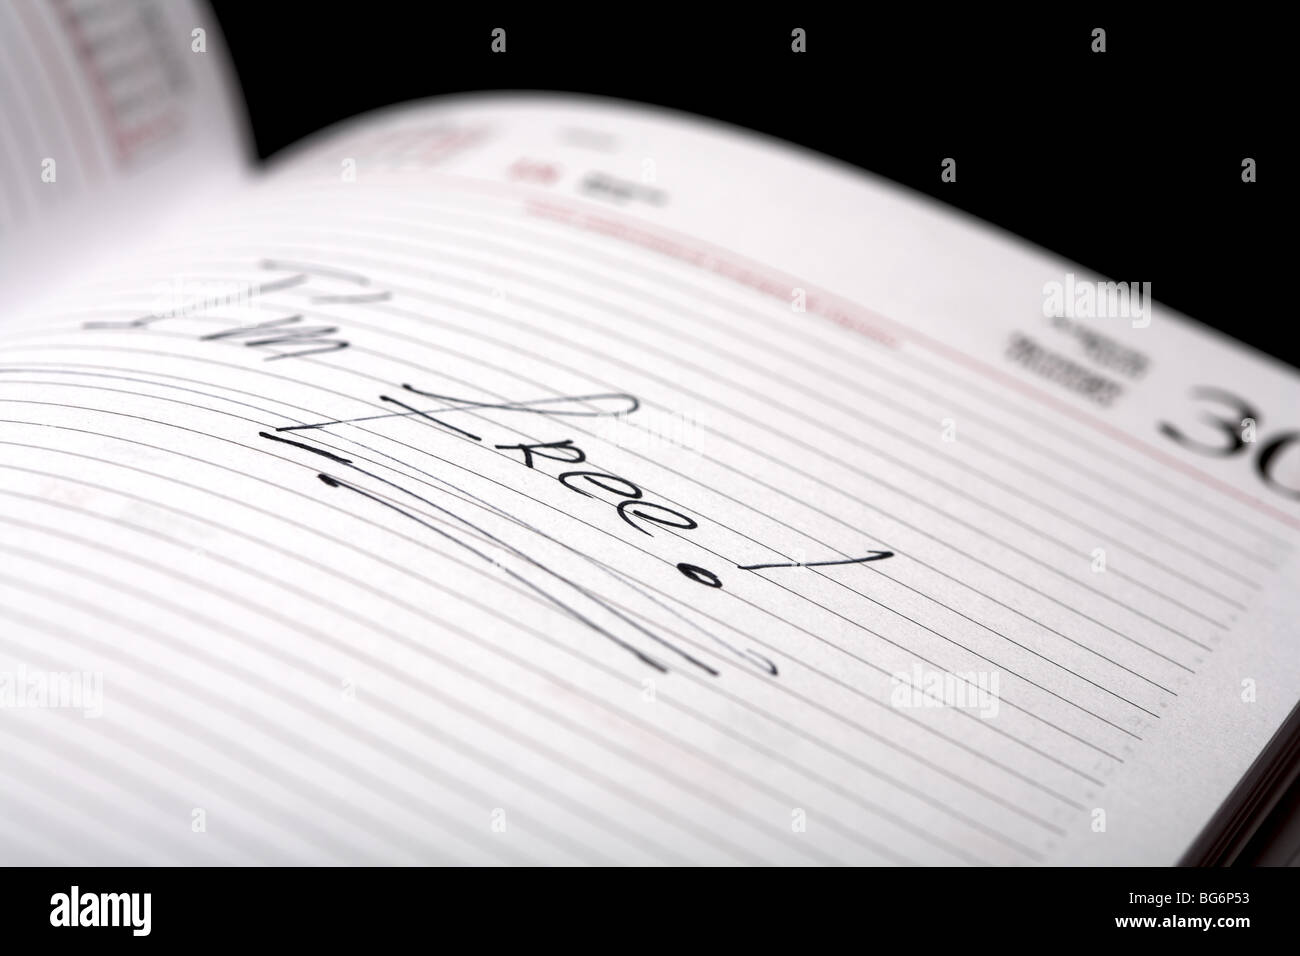 The phrase 'I'm free!' written on the page diary. Shallow DOF. - Stock Image